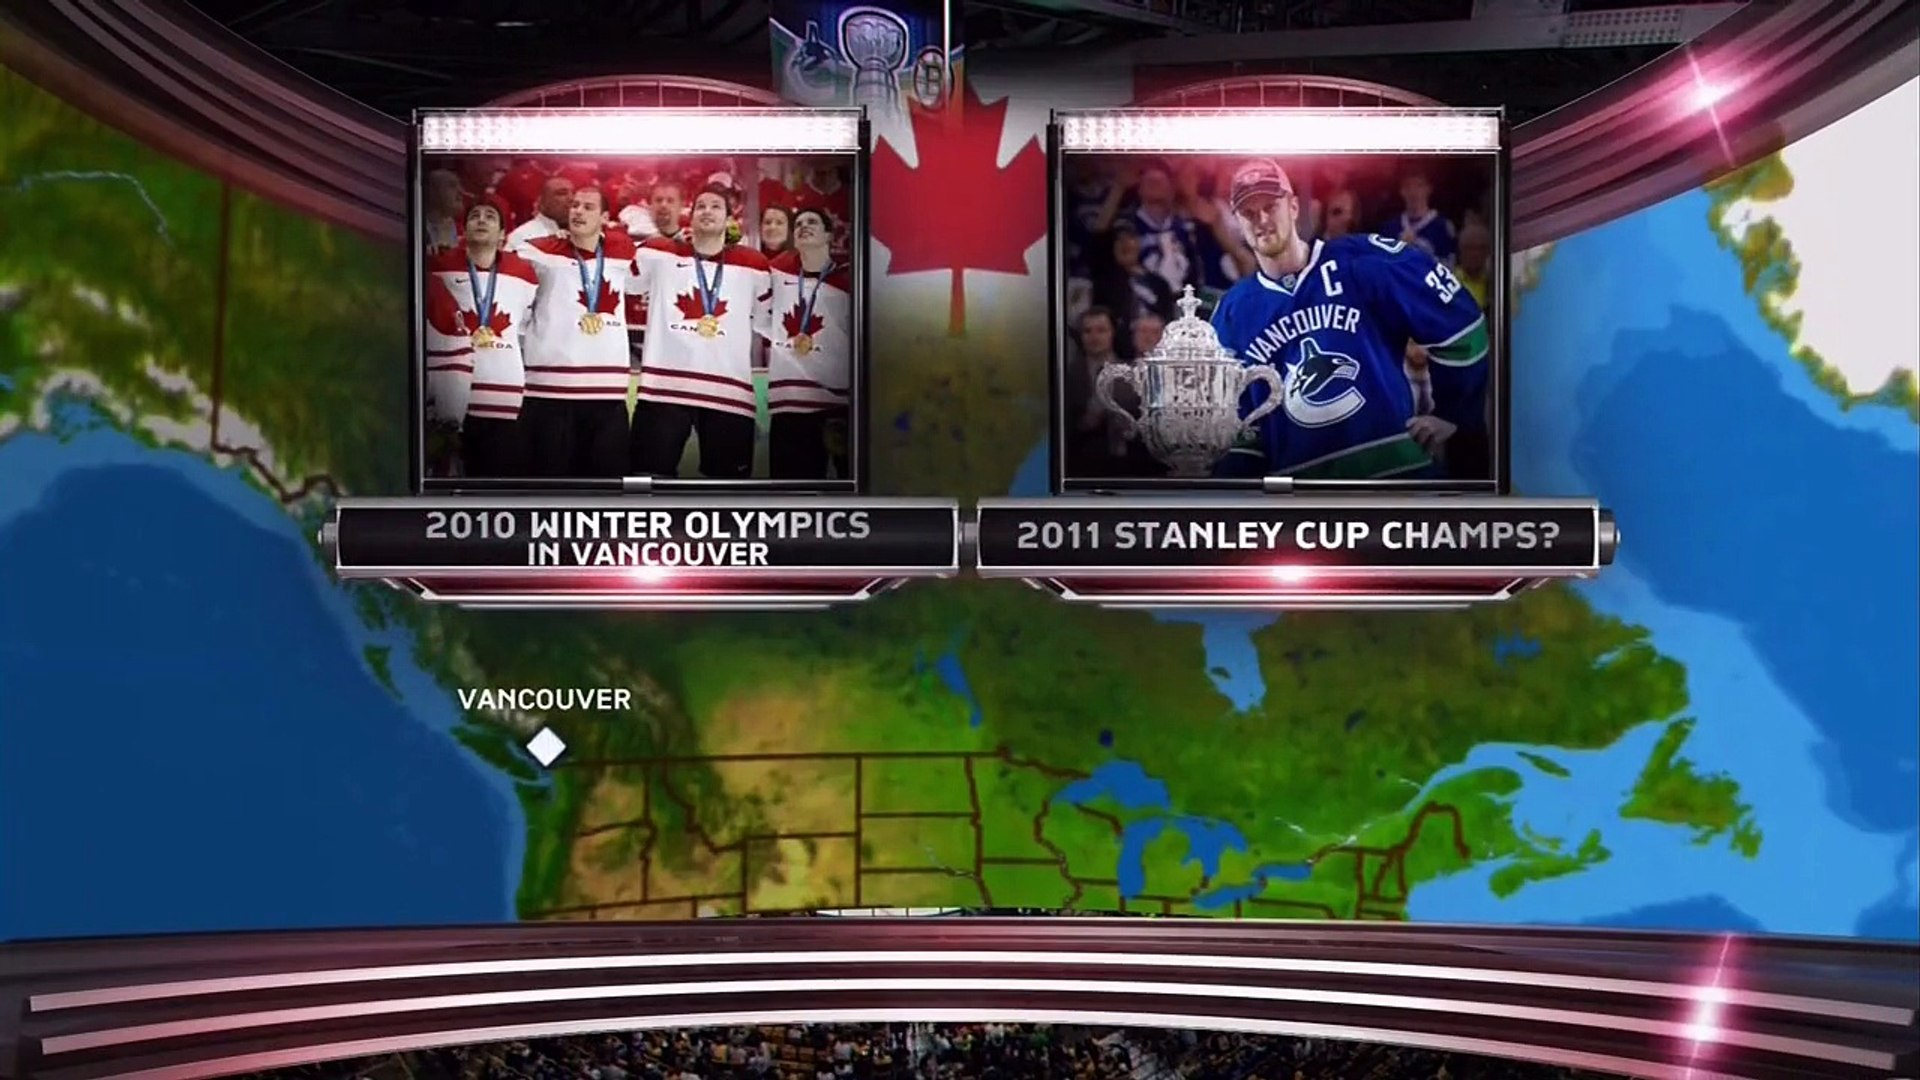 NHL 2011 Stanley Cup Final G6 - Boston Bruins vs Vancouver Canucks  2011-06-13